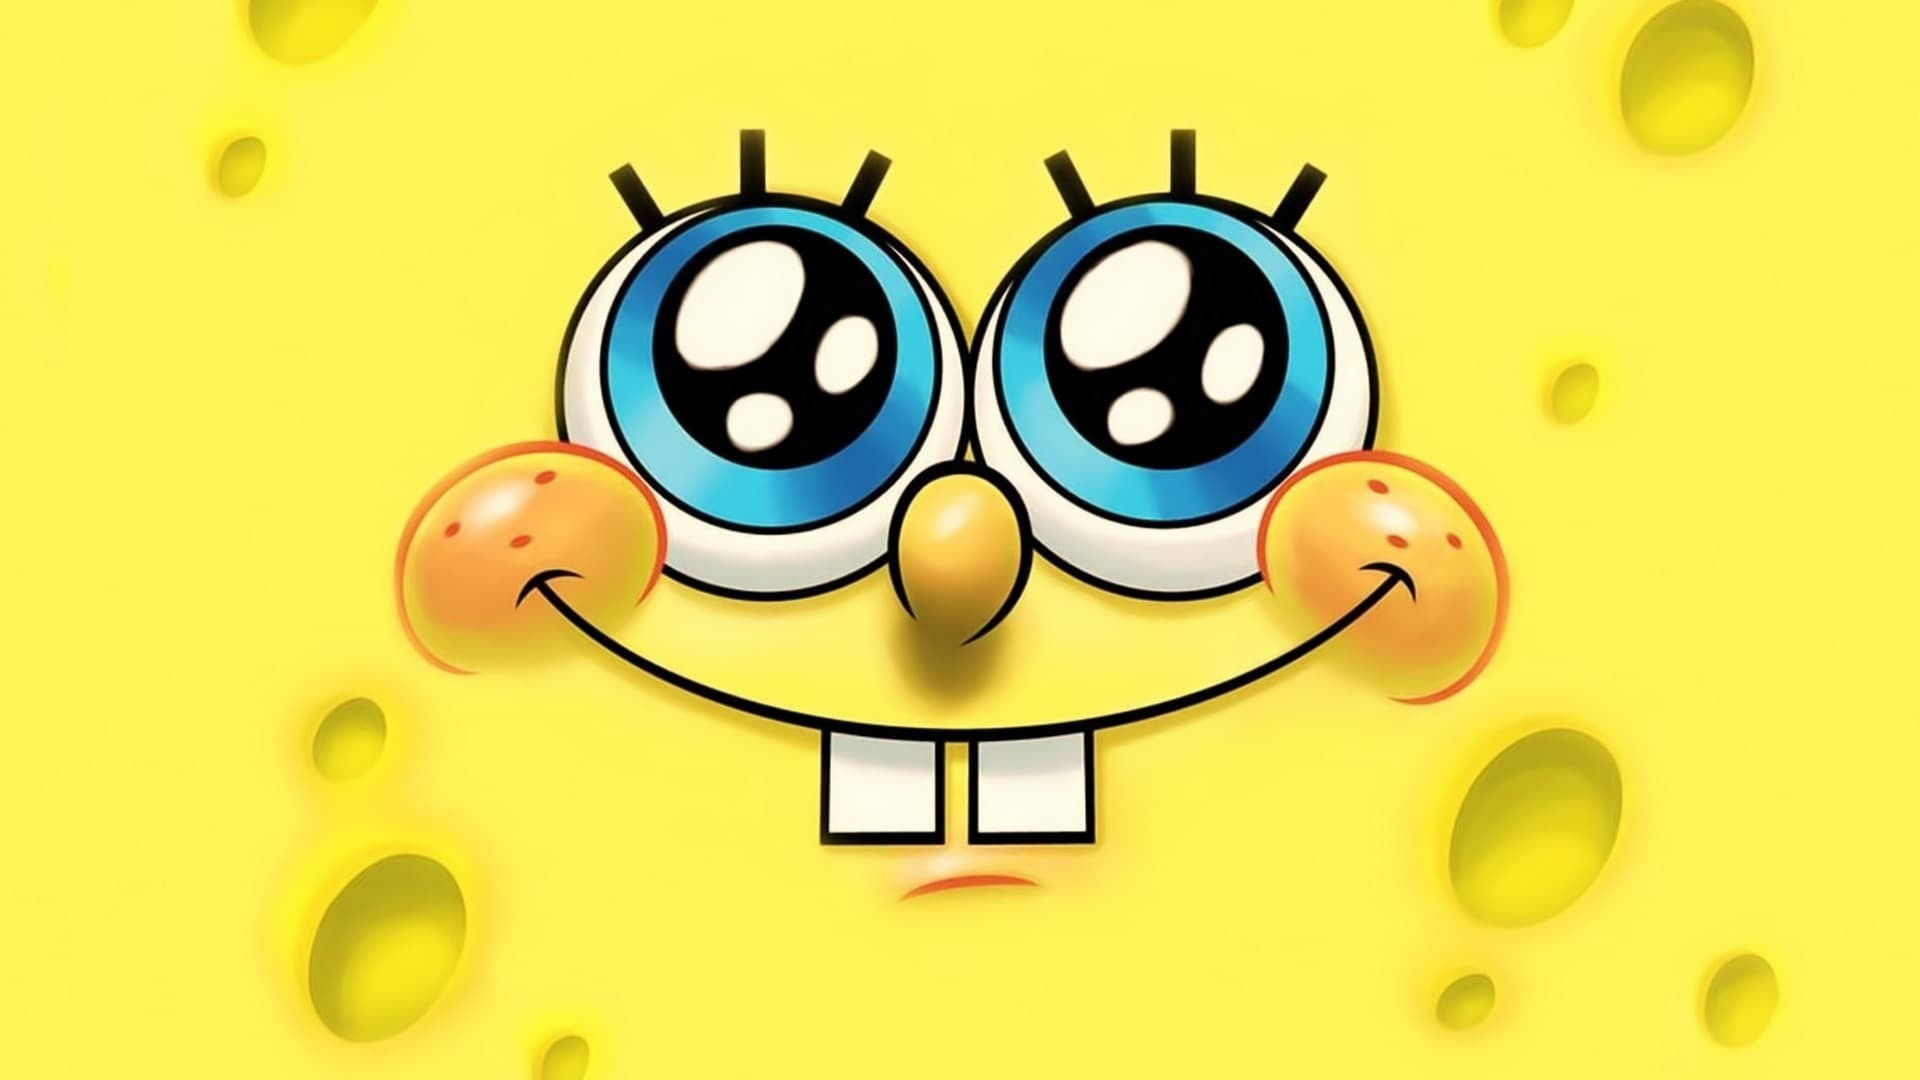 Res: 1920x1080, Patrick Star, Television, Squidward Tentacles, Text, Yellow HD Wallpaper,  Movies Picture, Background and Image